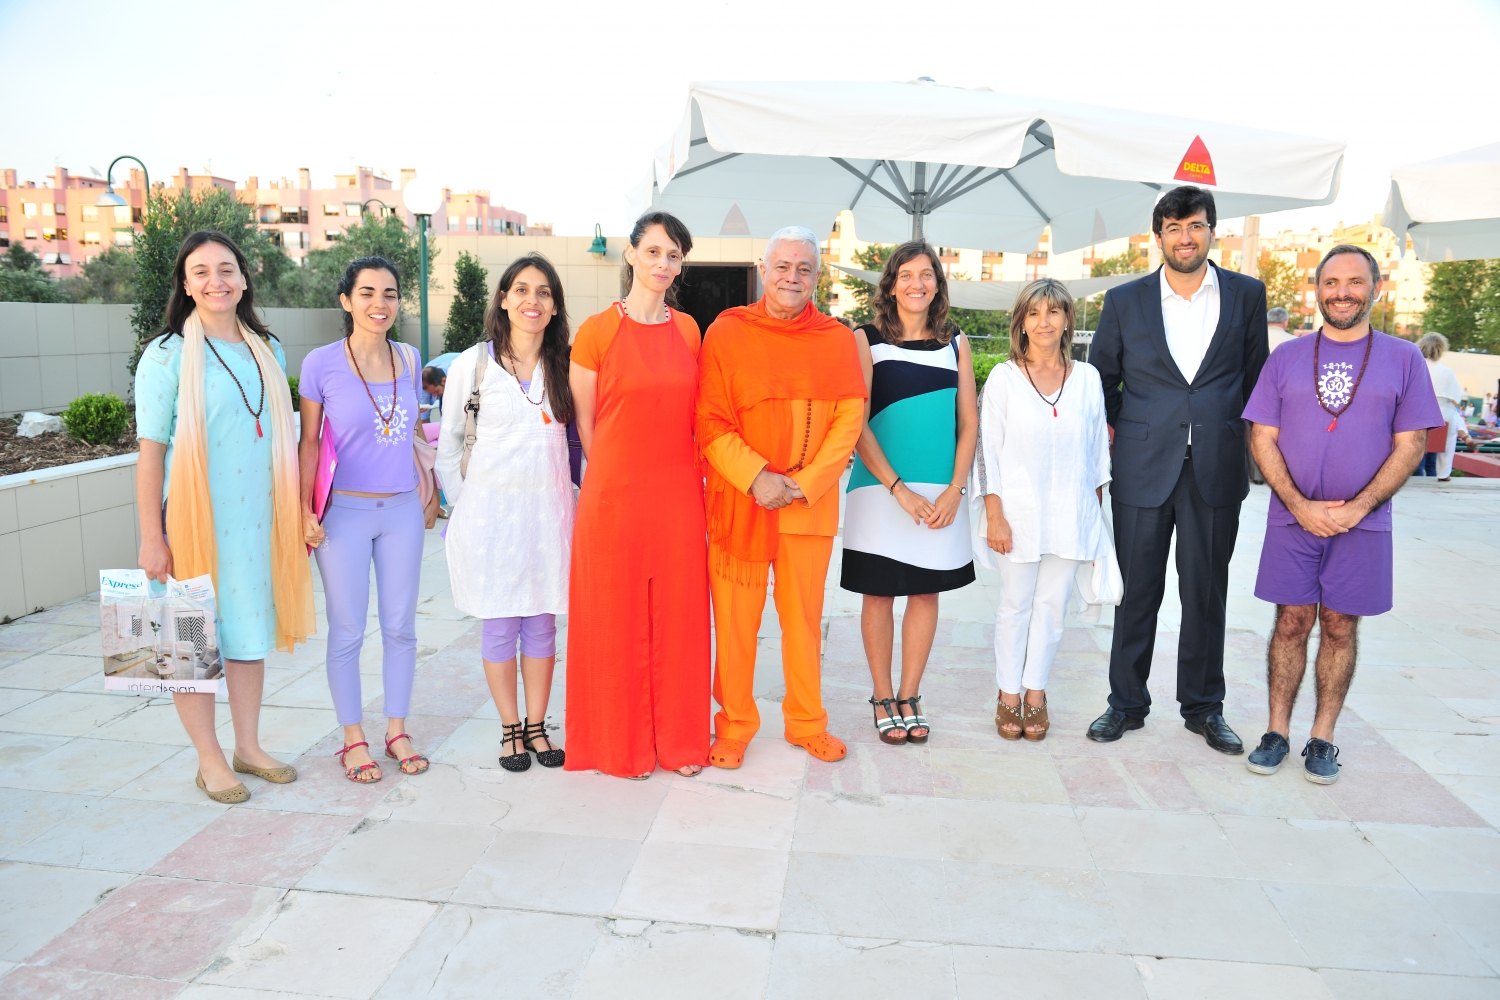 Commemoration of the International Day of Yoga - IDY - 2017 - Lisboa, Hindu Community